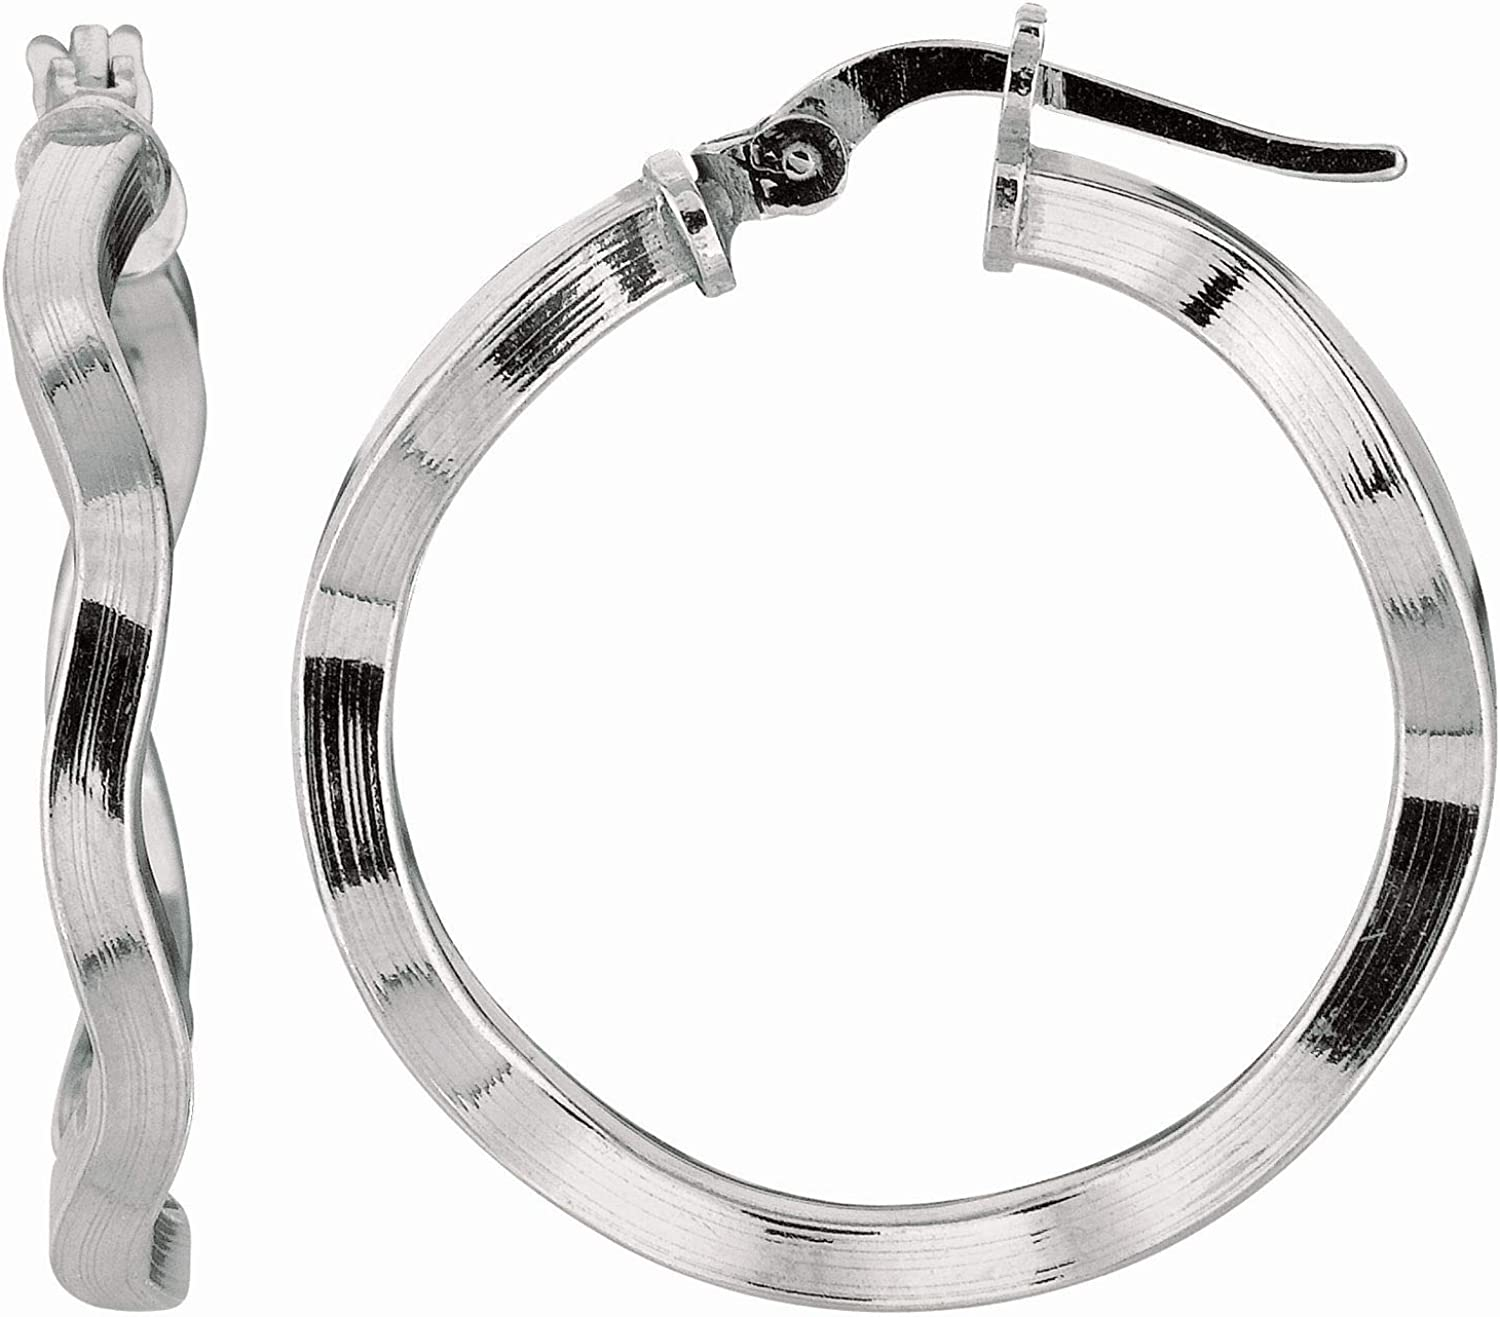 Silver New item with Rapid rise Rhodium Finish Shiny Hoop Earring w Twisted 2.0X20mm